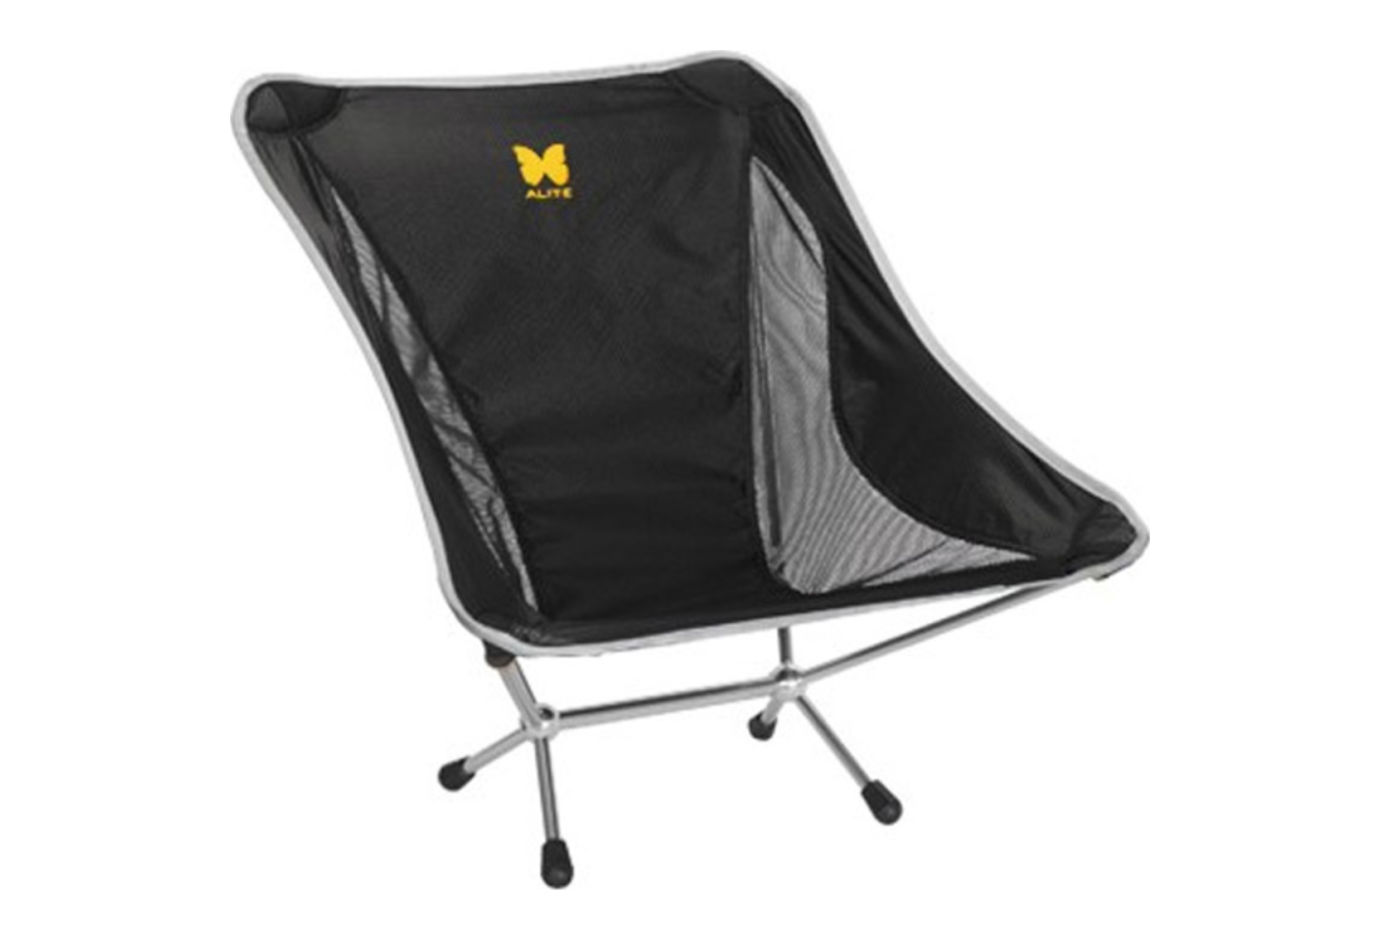 alite monarch chair canada high for dogs with megaesophagus mantis camping black